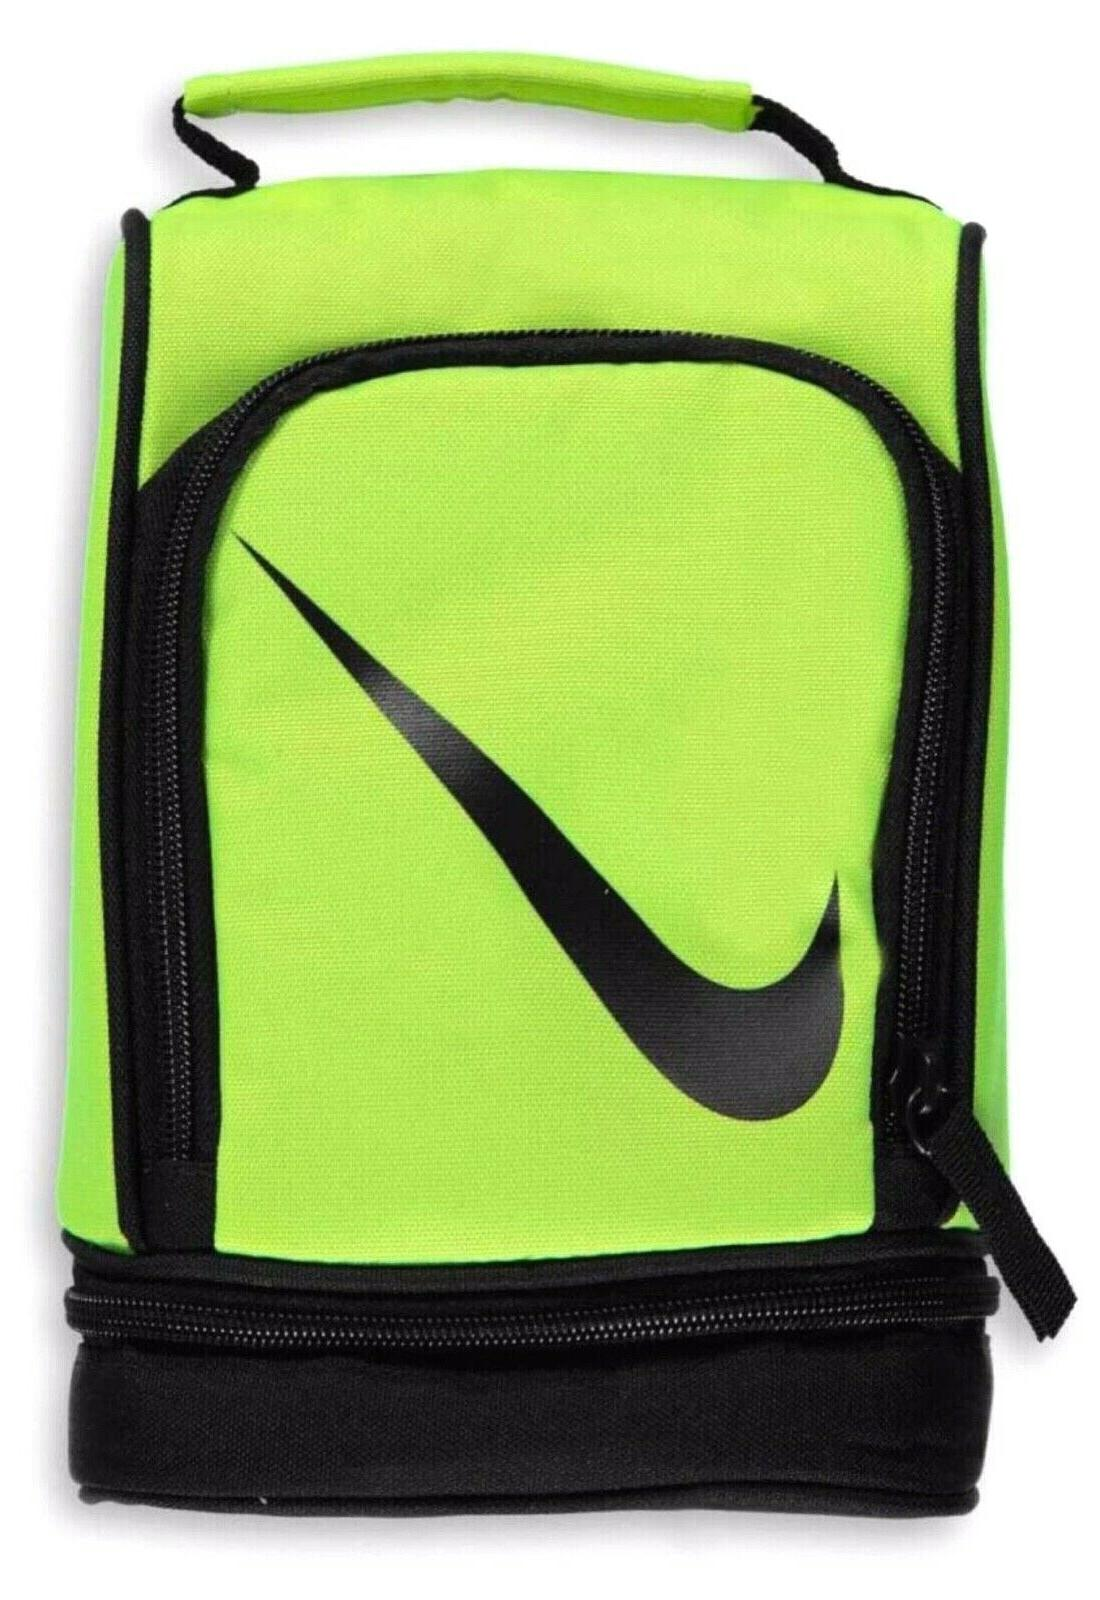 dome lunch bag neon yellow